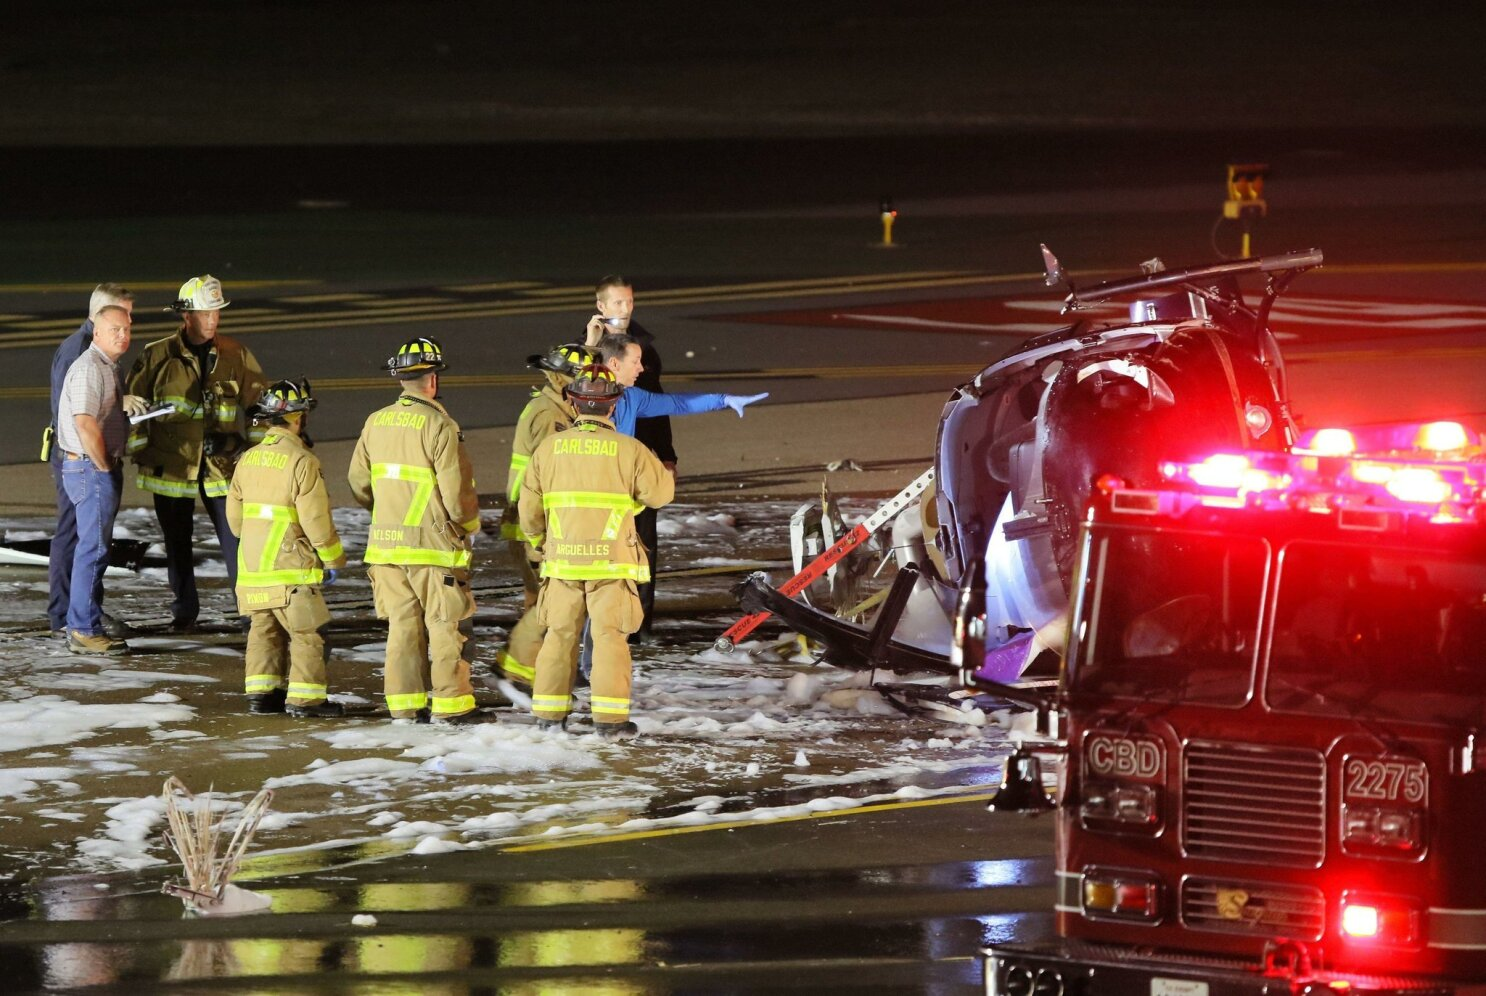 2 dead in Carlsbad airport helicopter crash - The San Diego Union